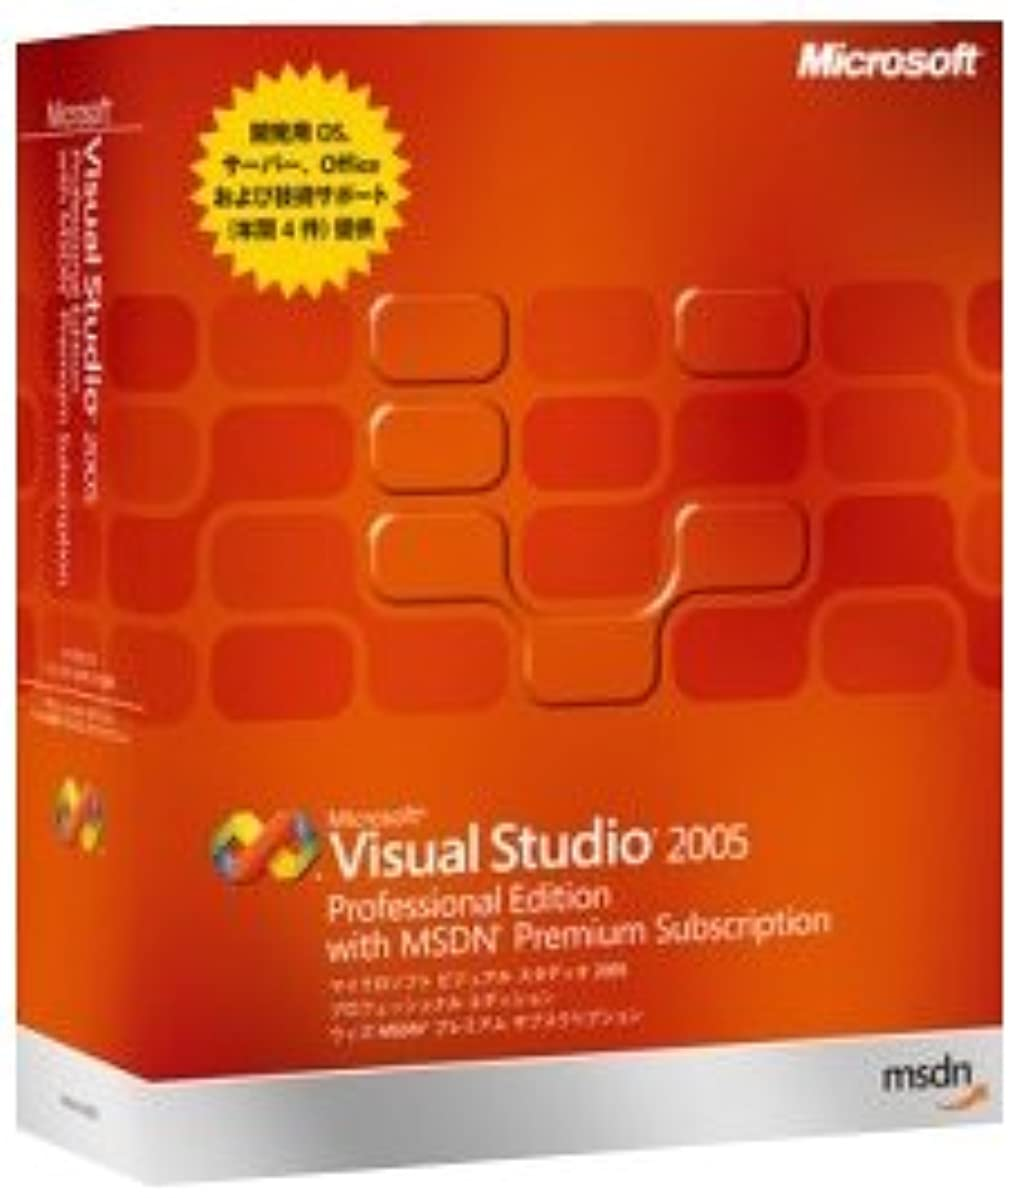 命令特定の日没Visual Studio 2005 Professional Edition with MSDN Premium